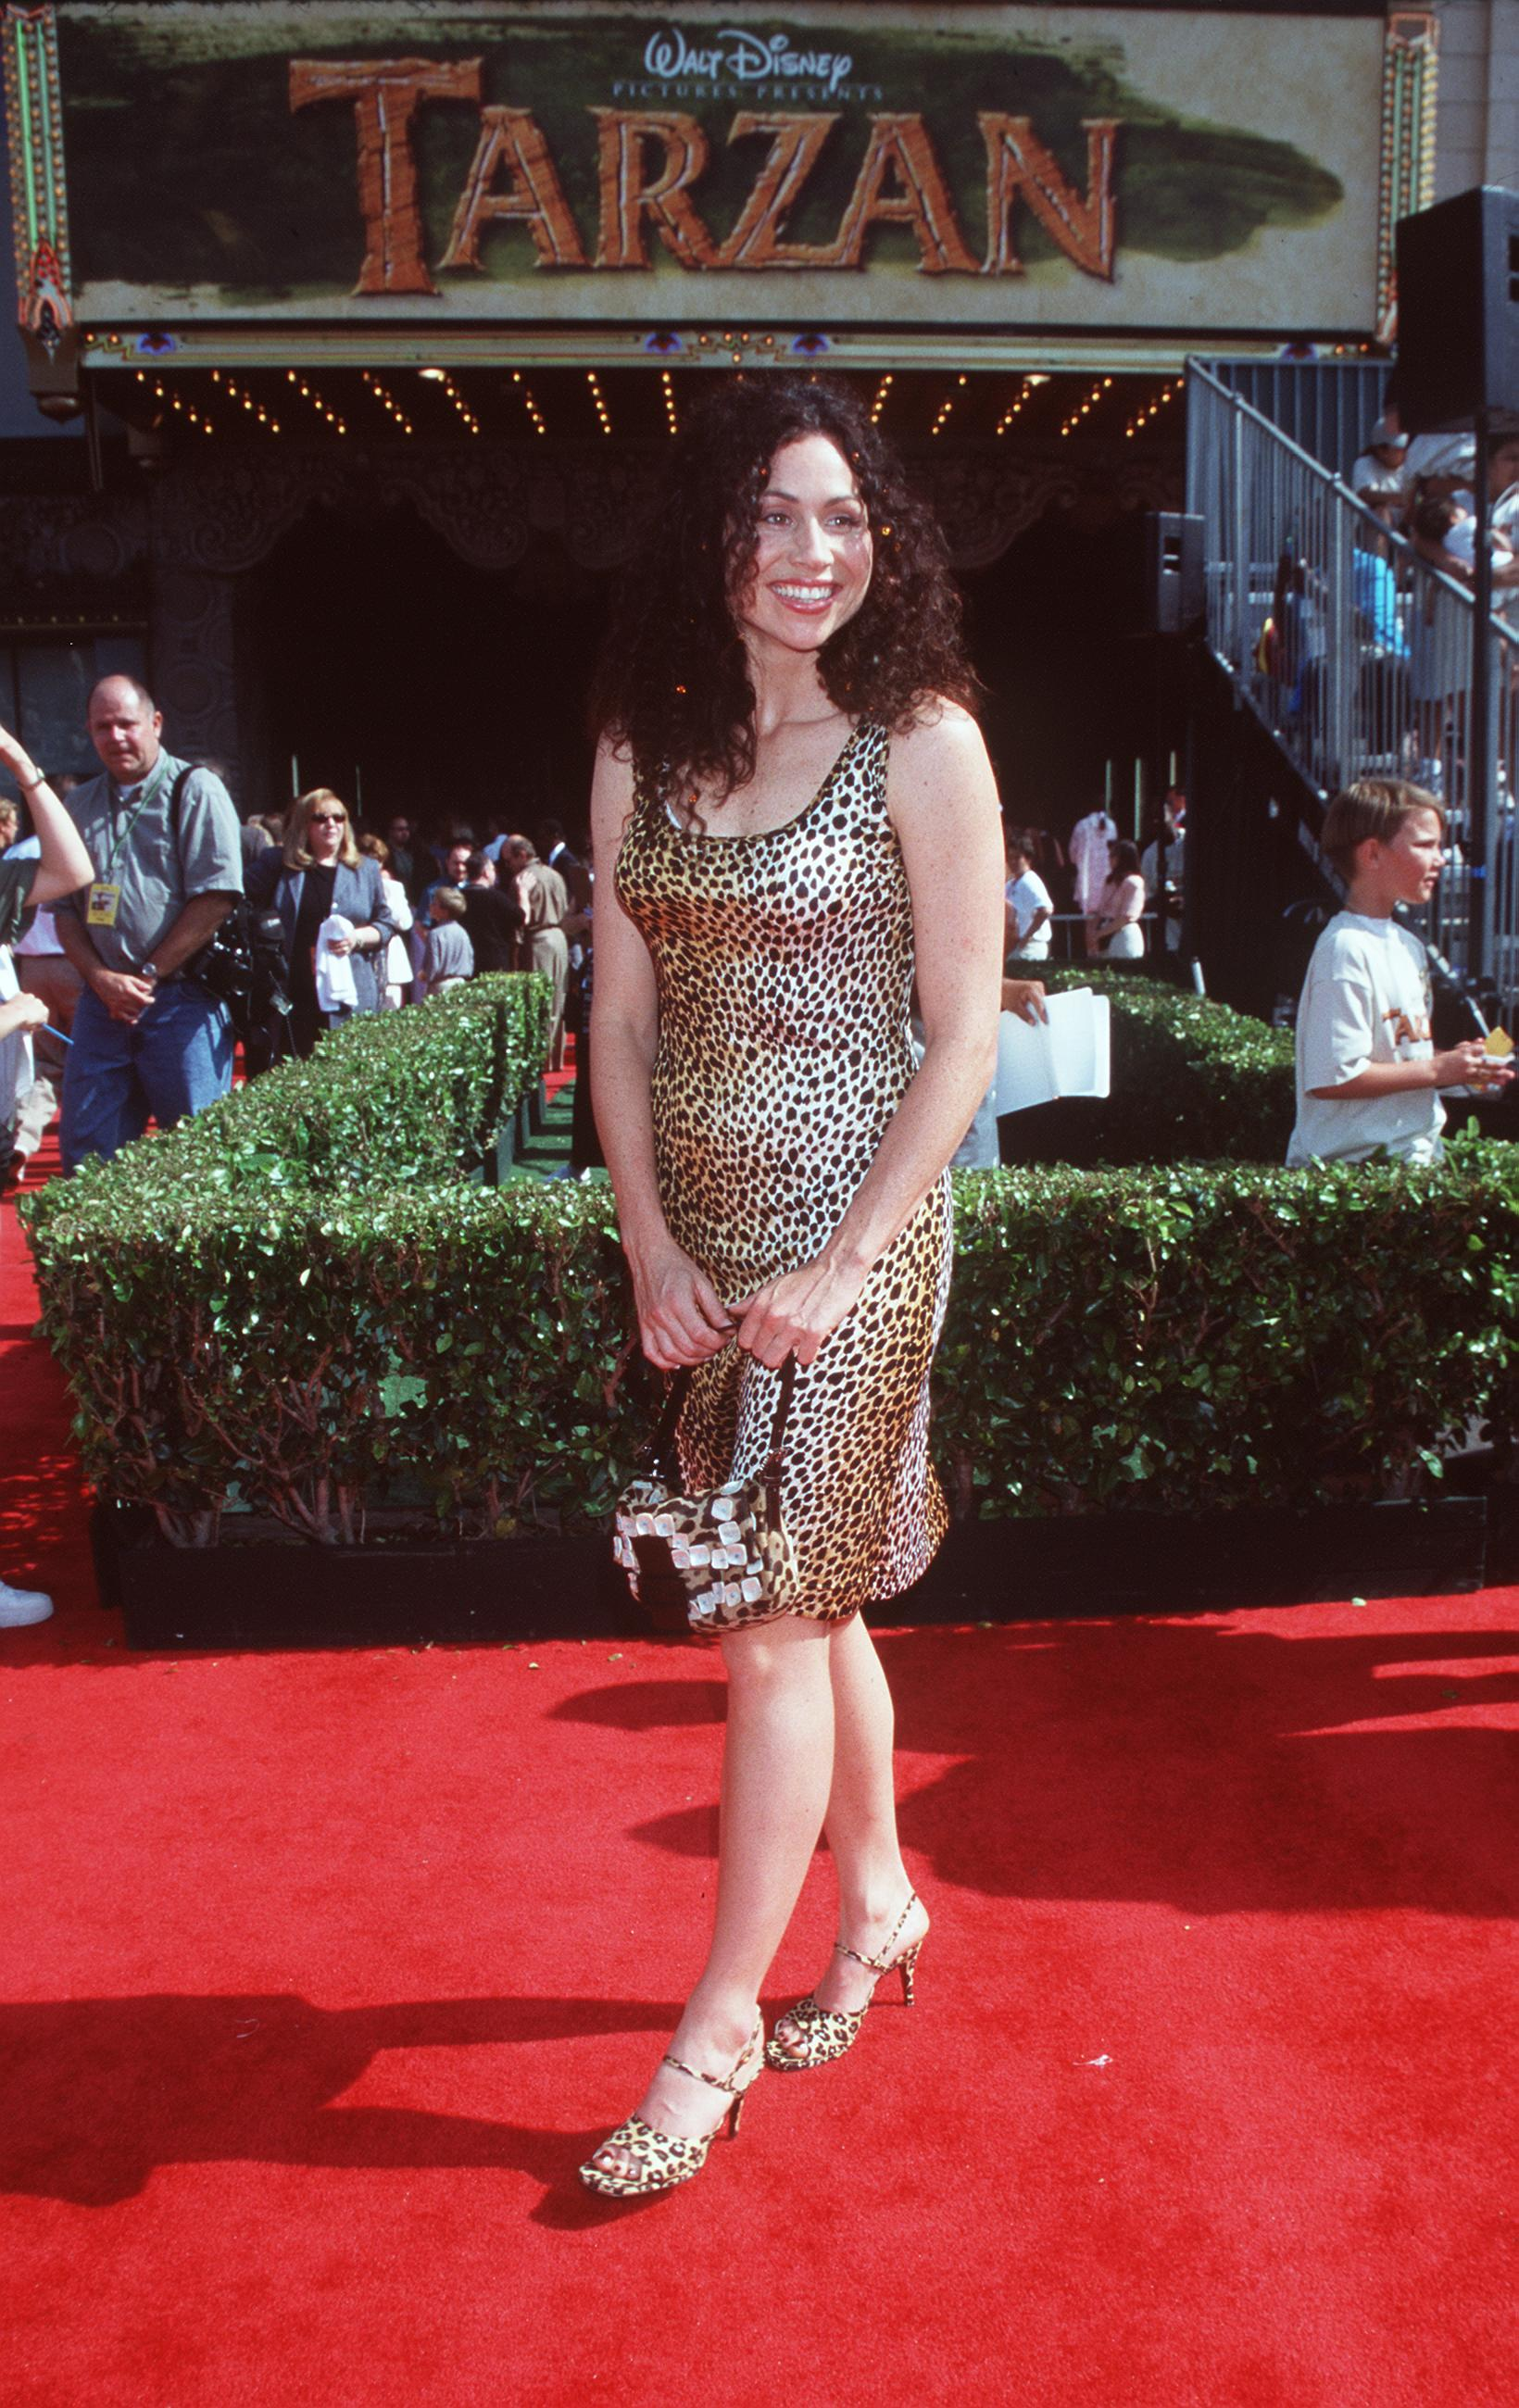 """378347 01: 6/12/99 Hollywood, CA Minnie Driver at the premiere of the new film """"Tarzan."""" Photo Brenda Chase/Online USA, Inc."""